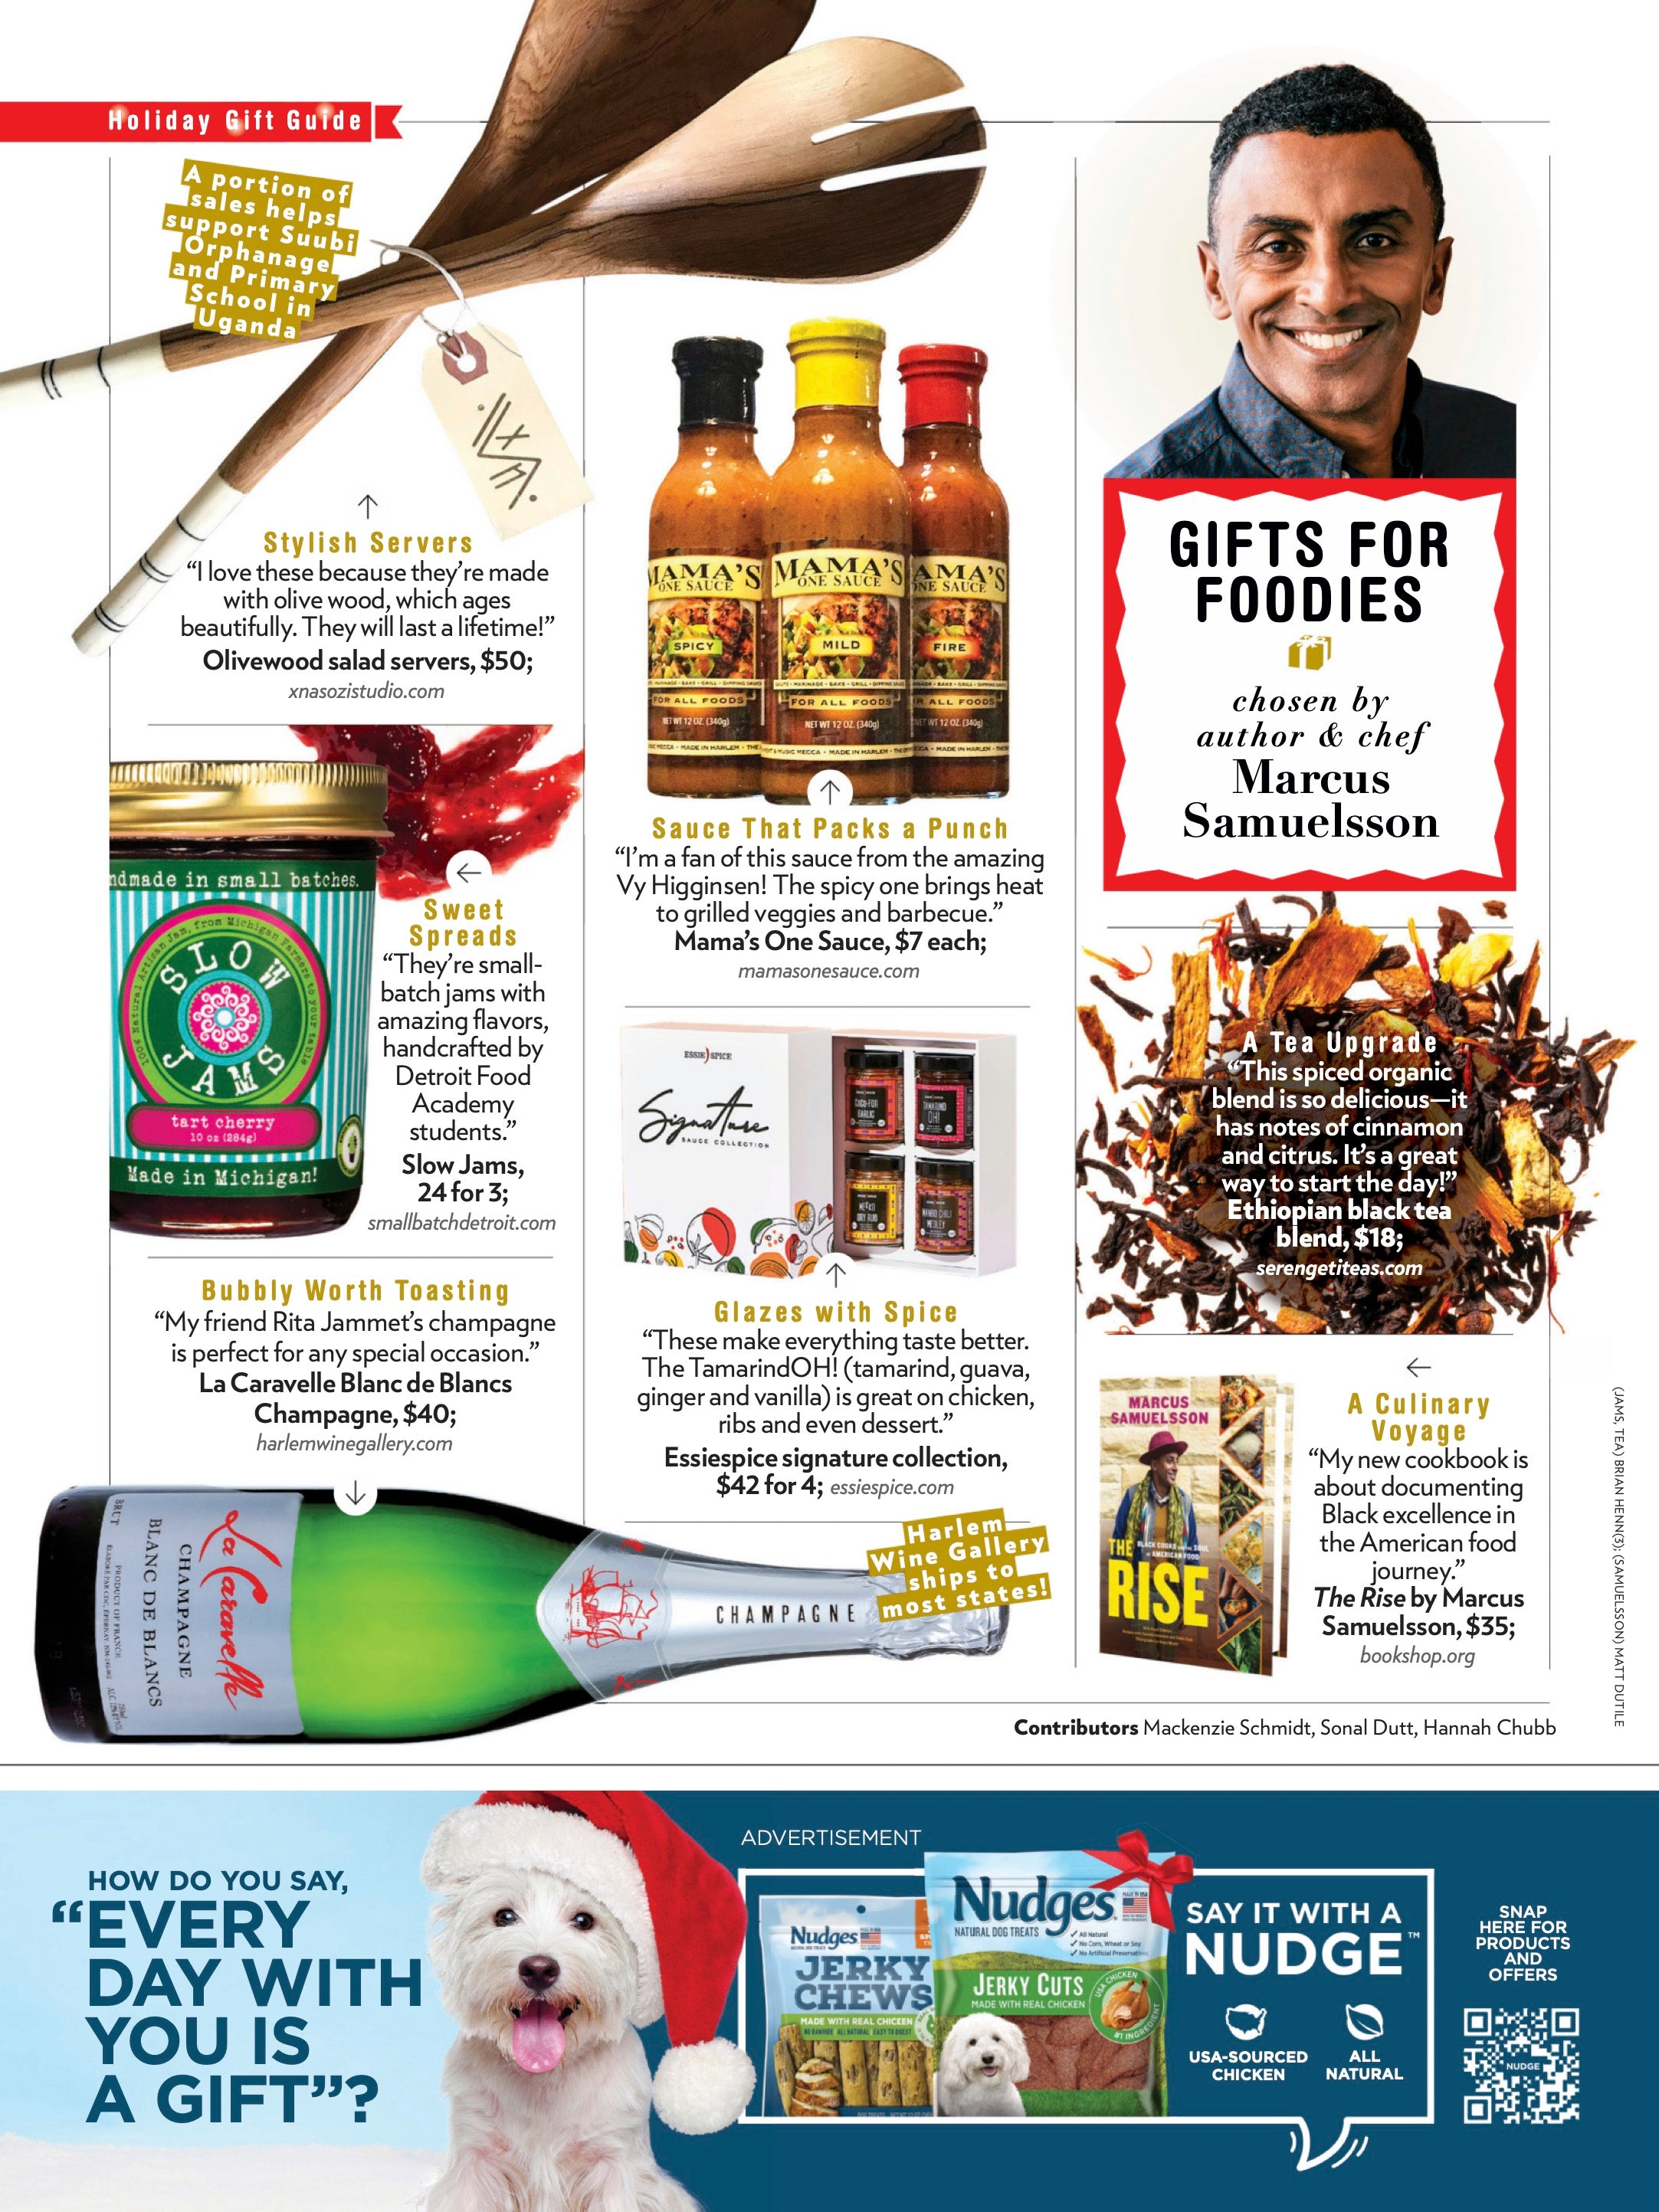 Marcus Samuelsson's 2020 Gift Guide, People Magazine